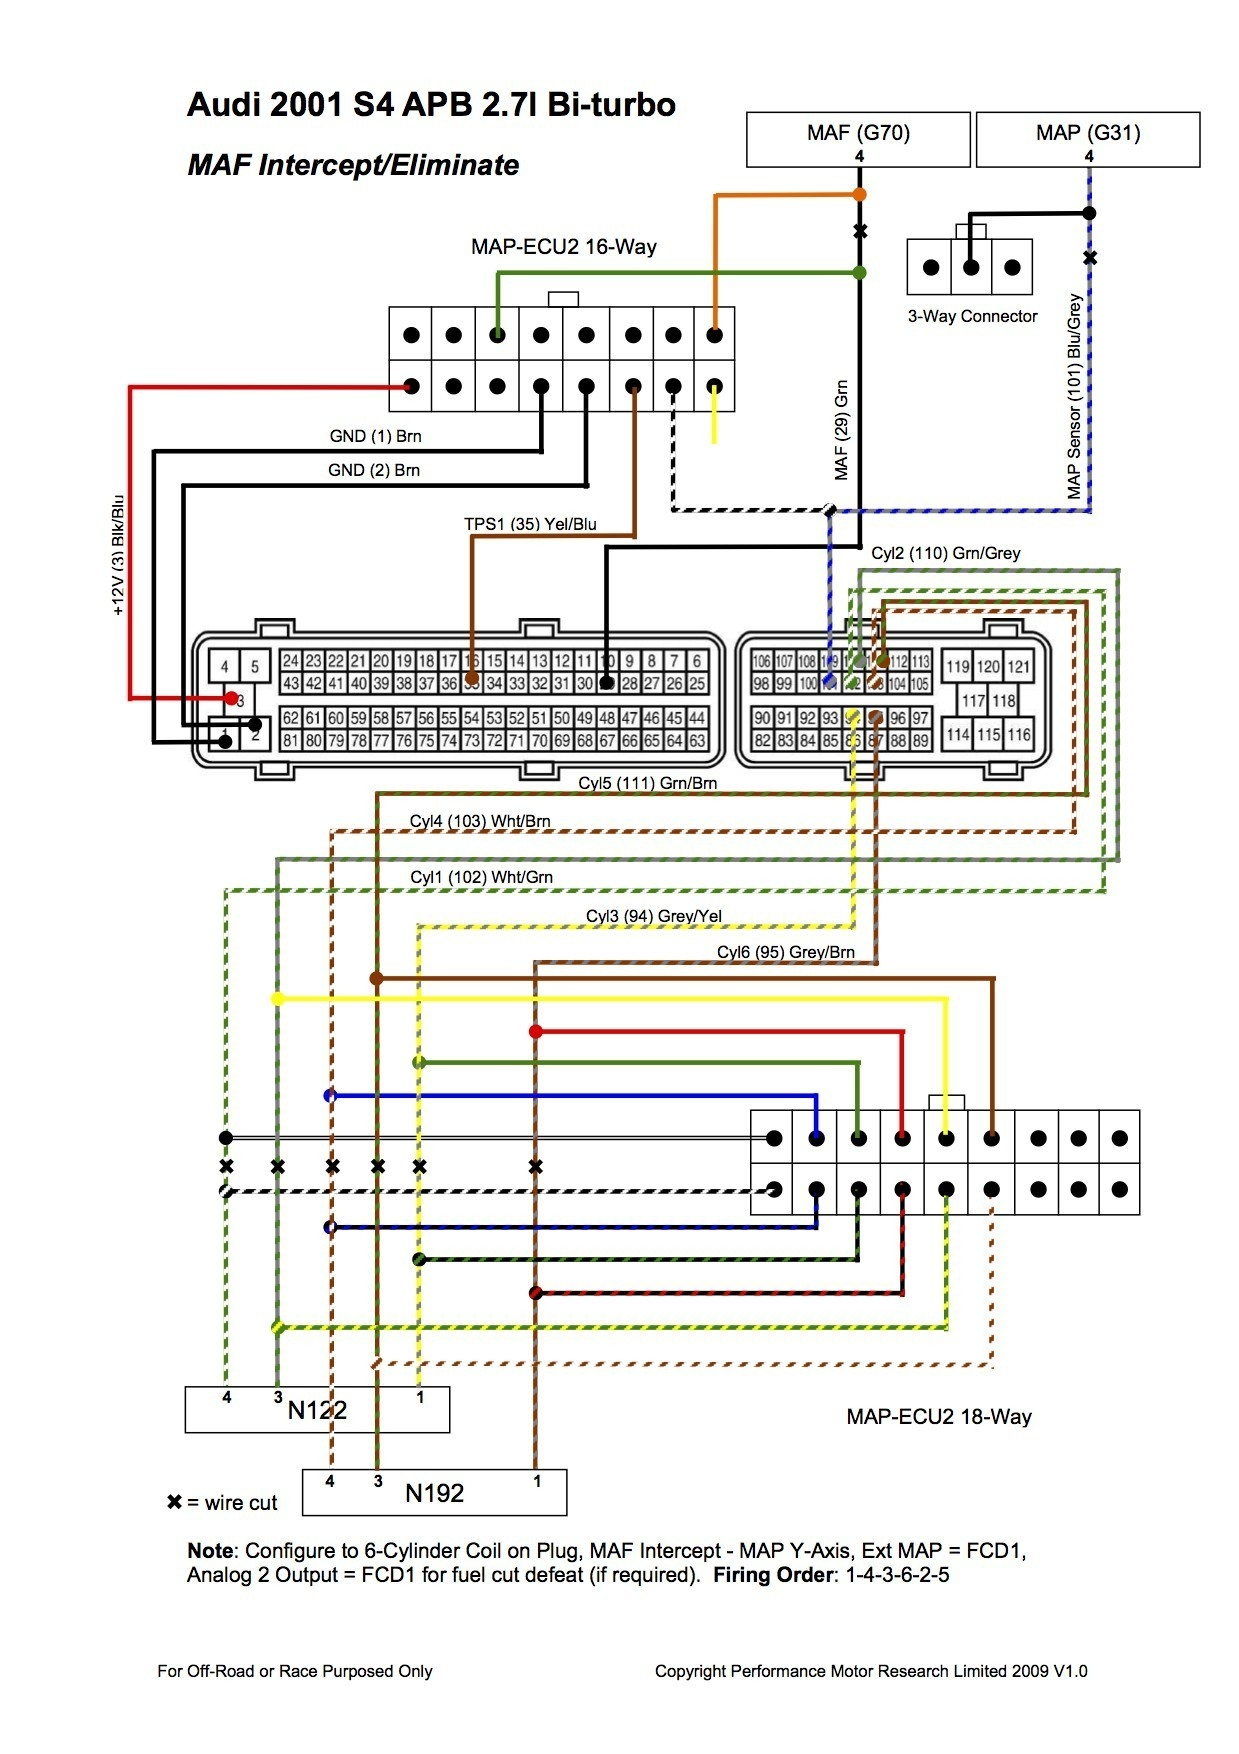 2001 Dodge Ram 2500 Radio Wiring Diagram | Free Wiring Diagram